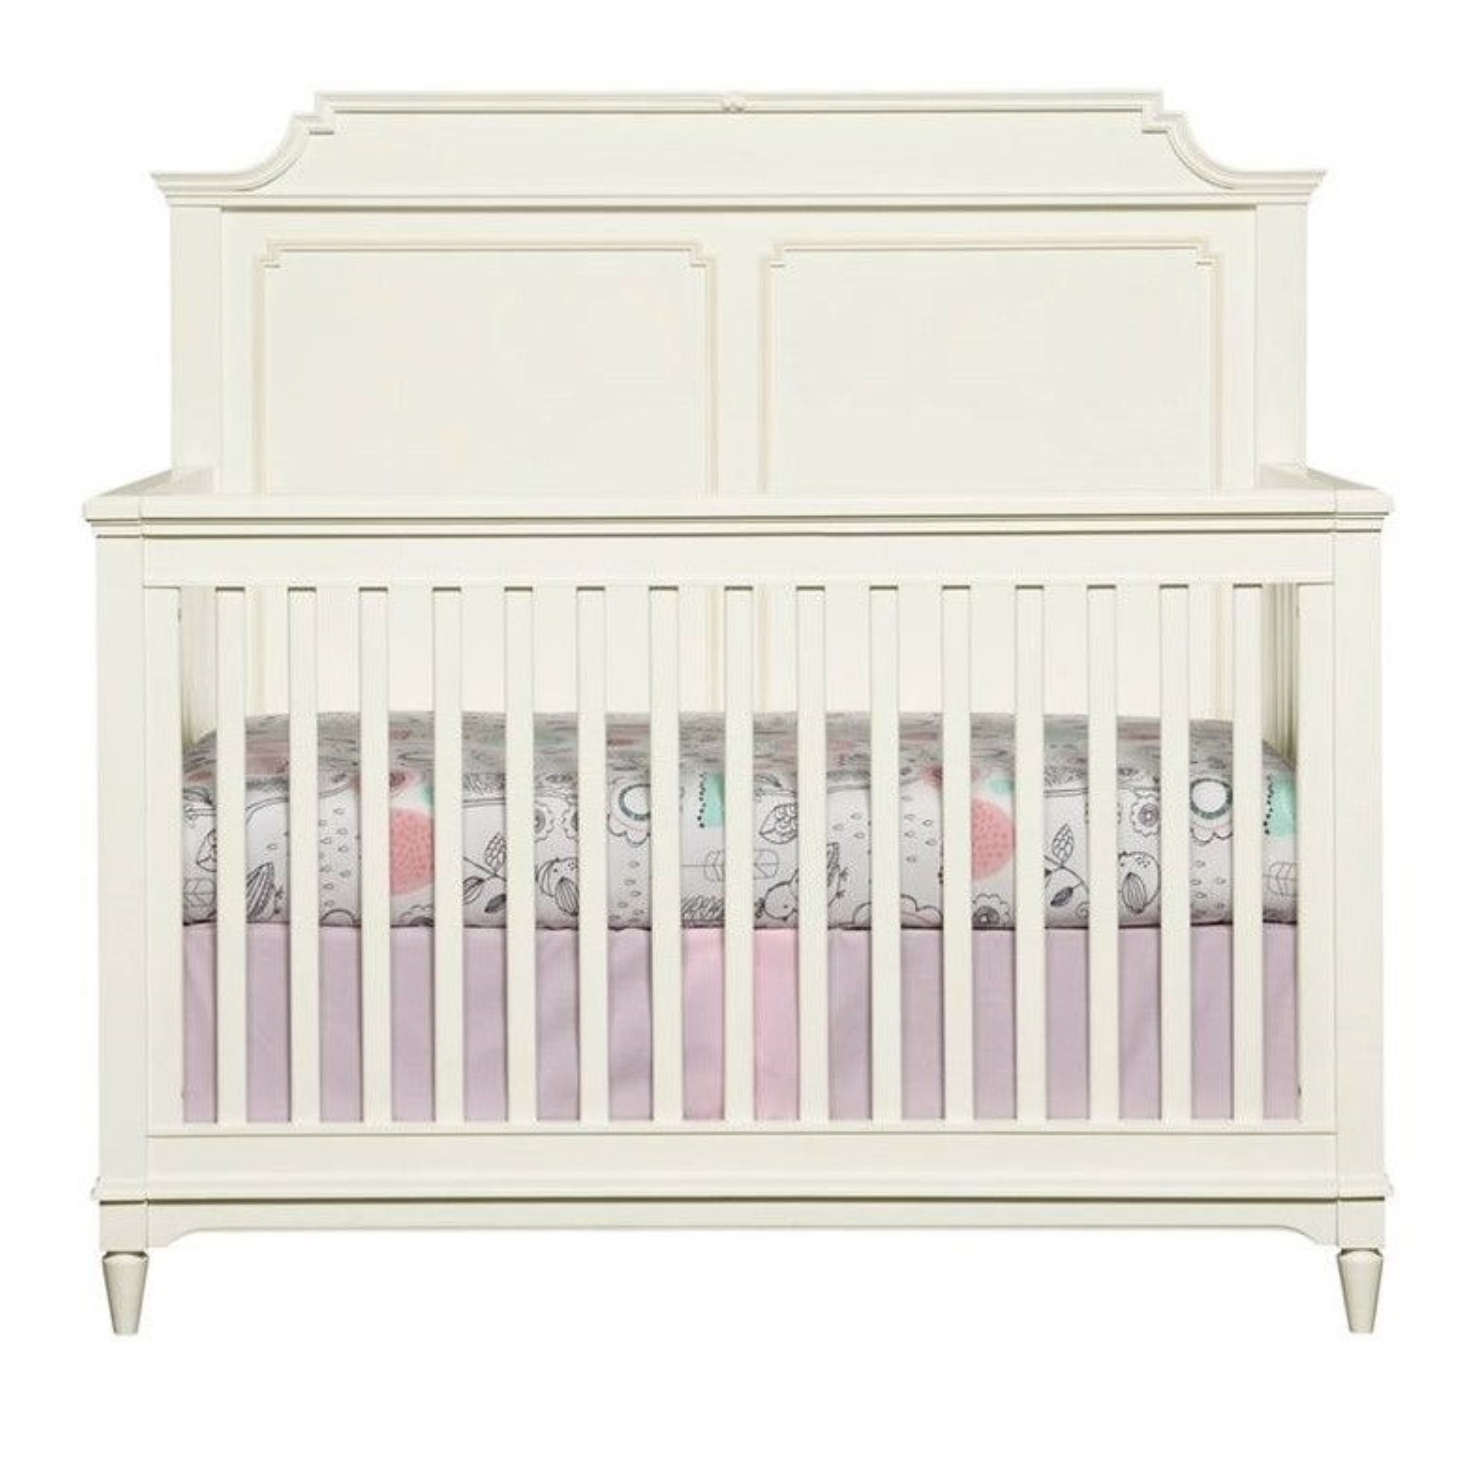 Stone & Leigh | Clementine Court | Built to Grow Crib